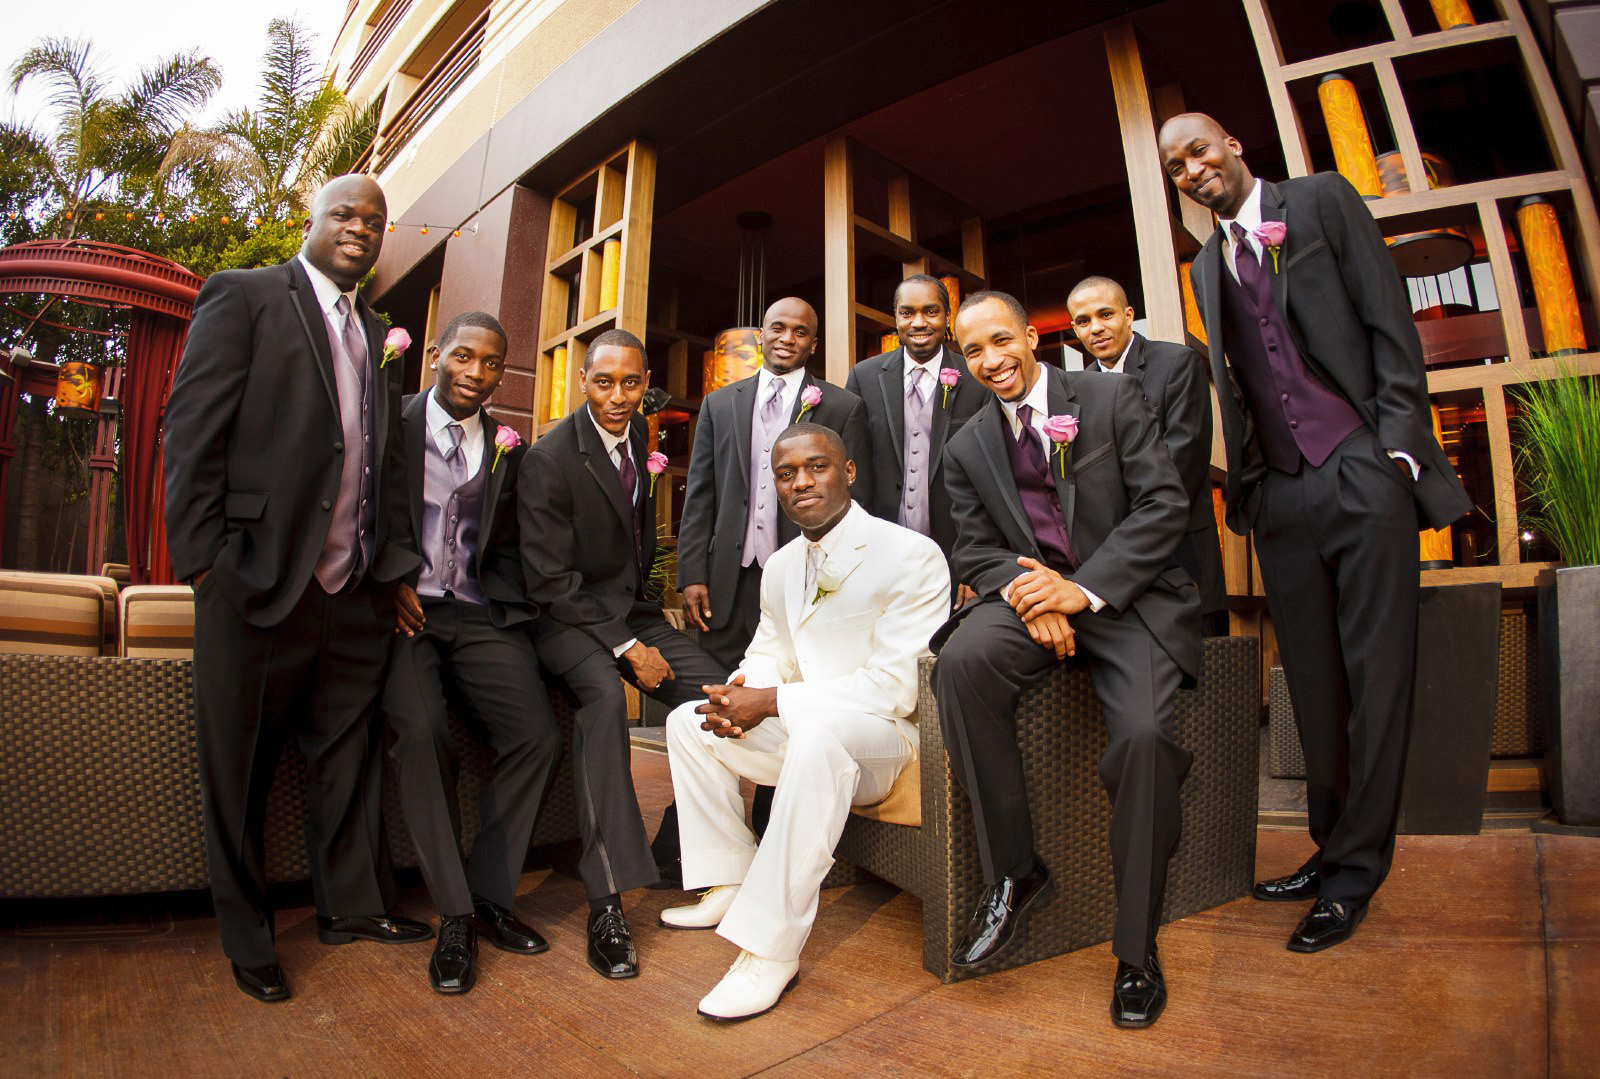 men-in-black-groomsmen-portrait